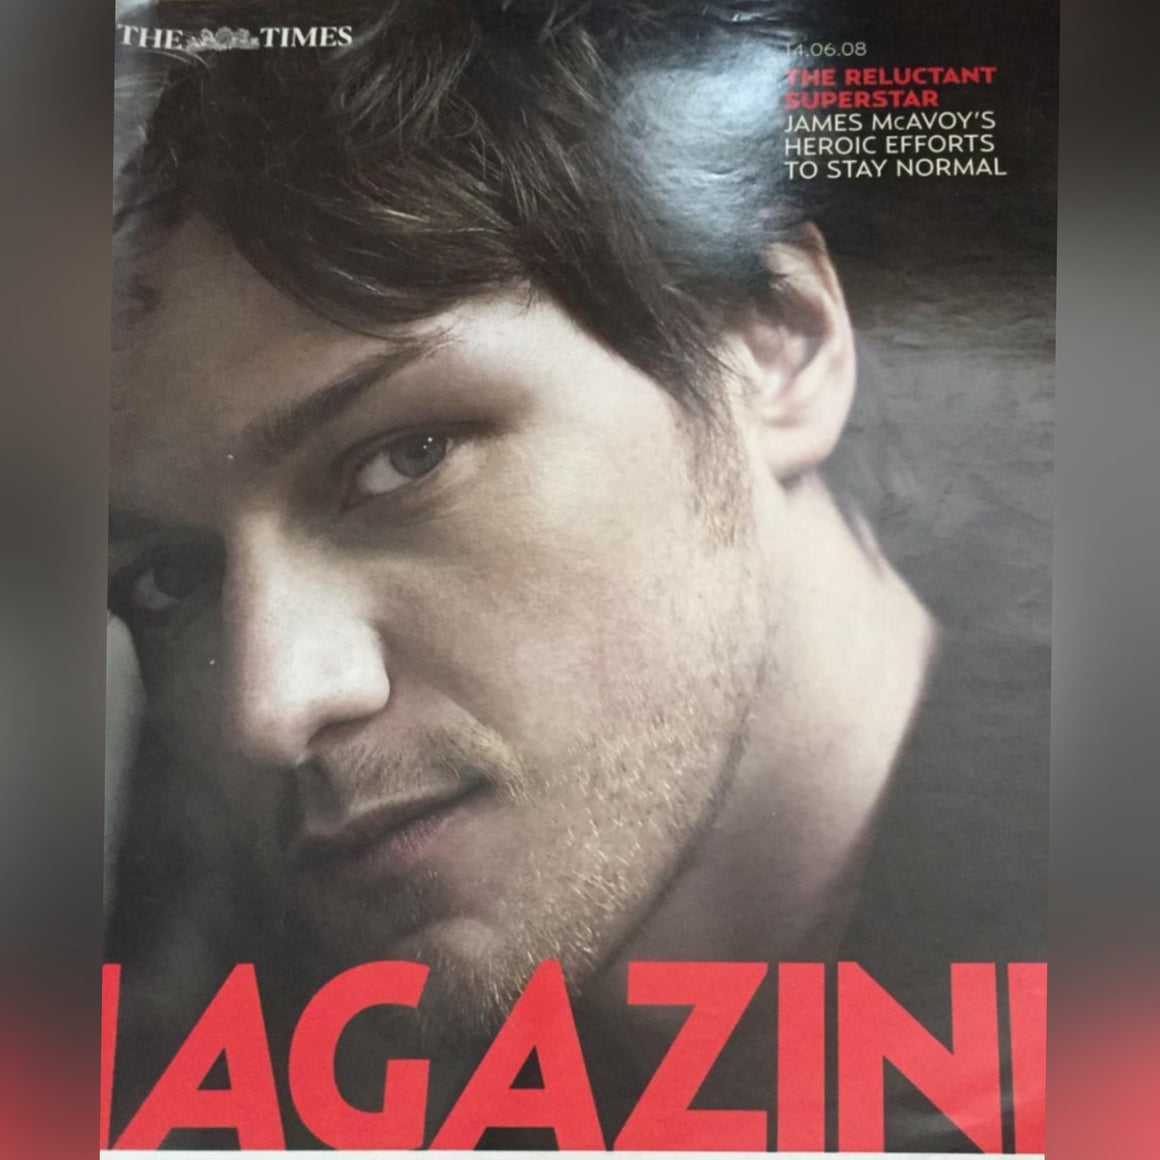 The Times magazine - James McAvoy cover (14 June 2008)